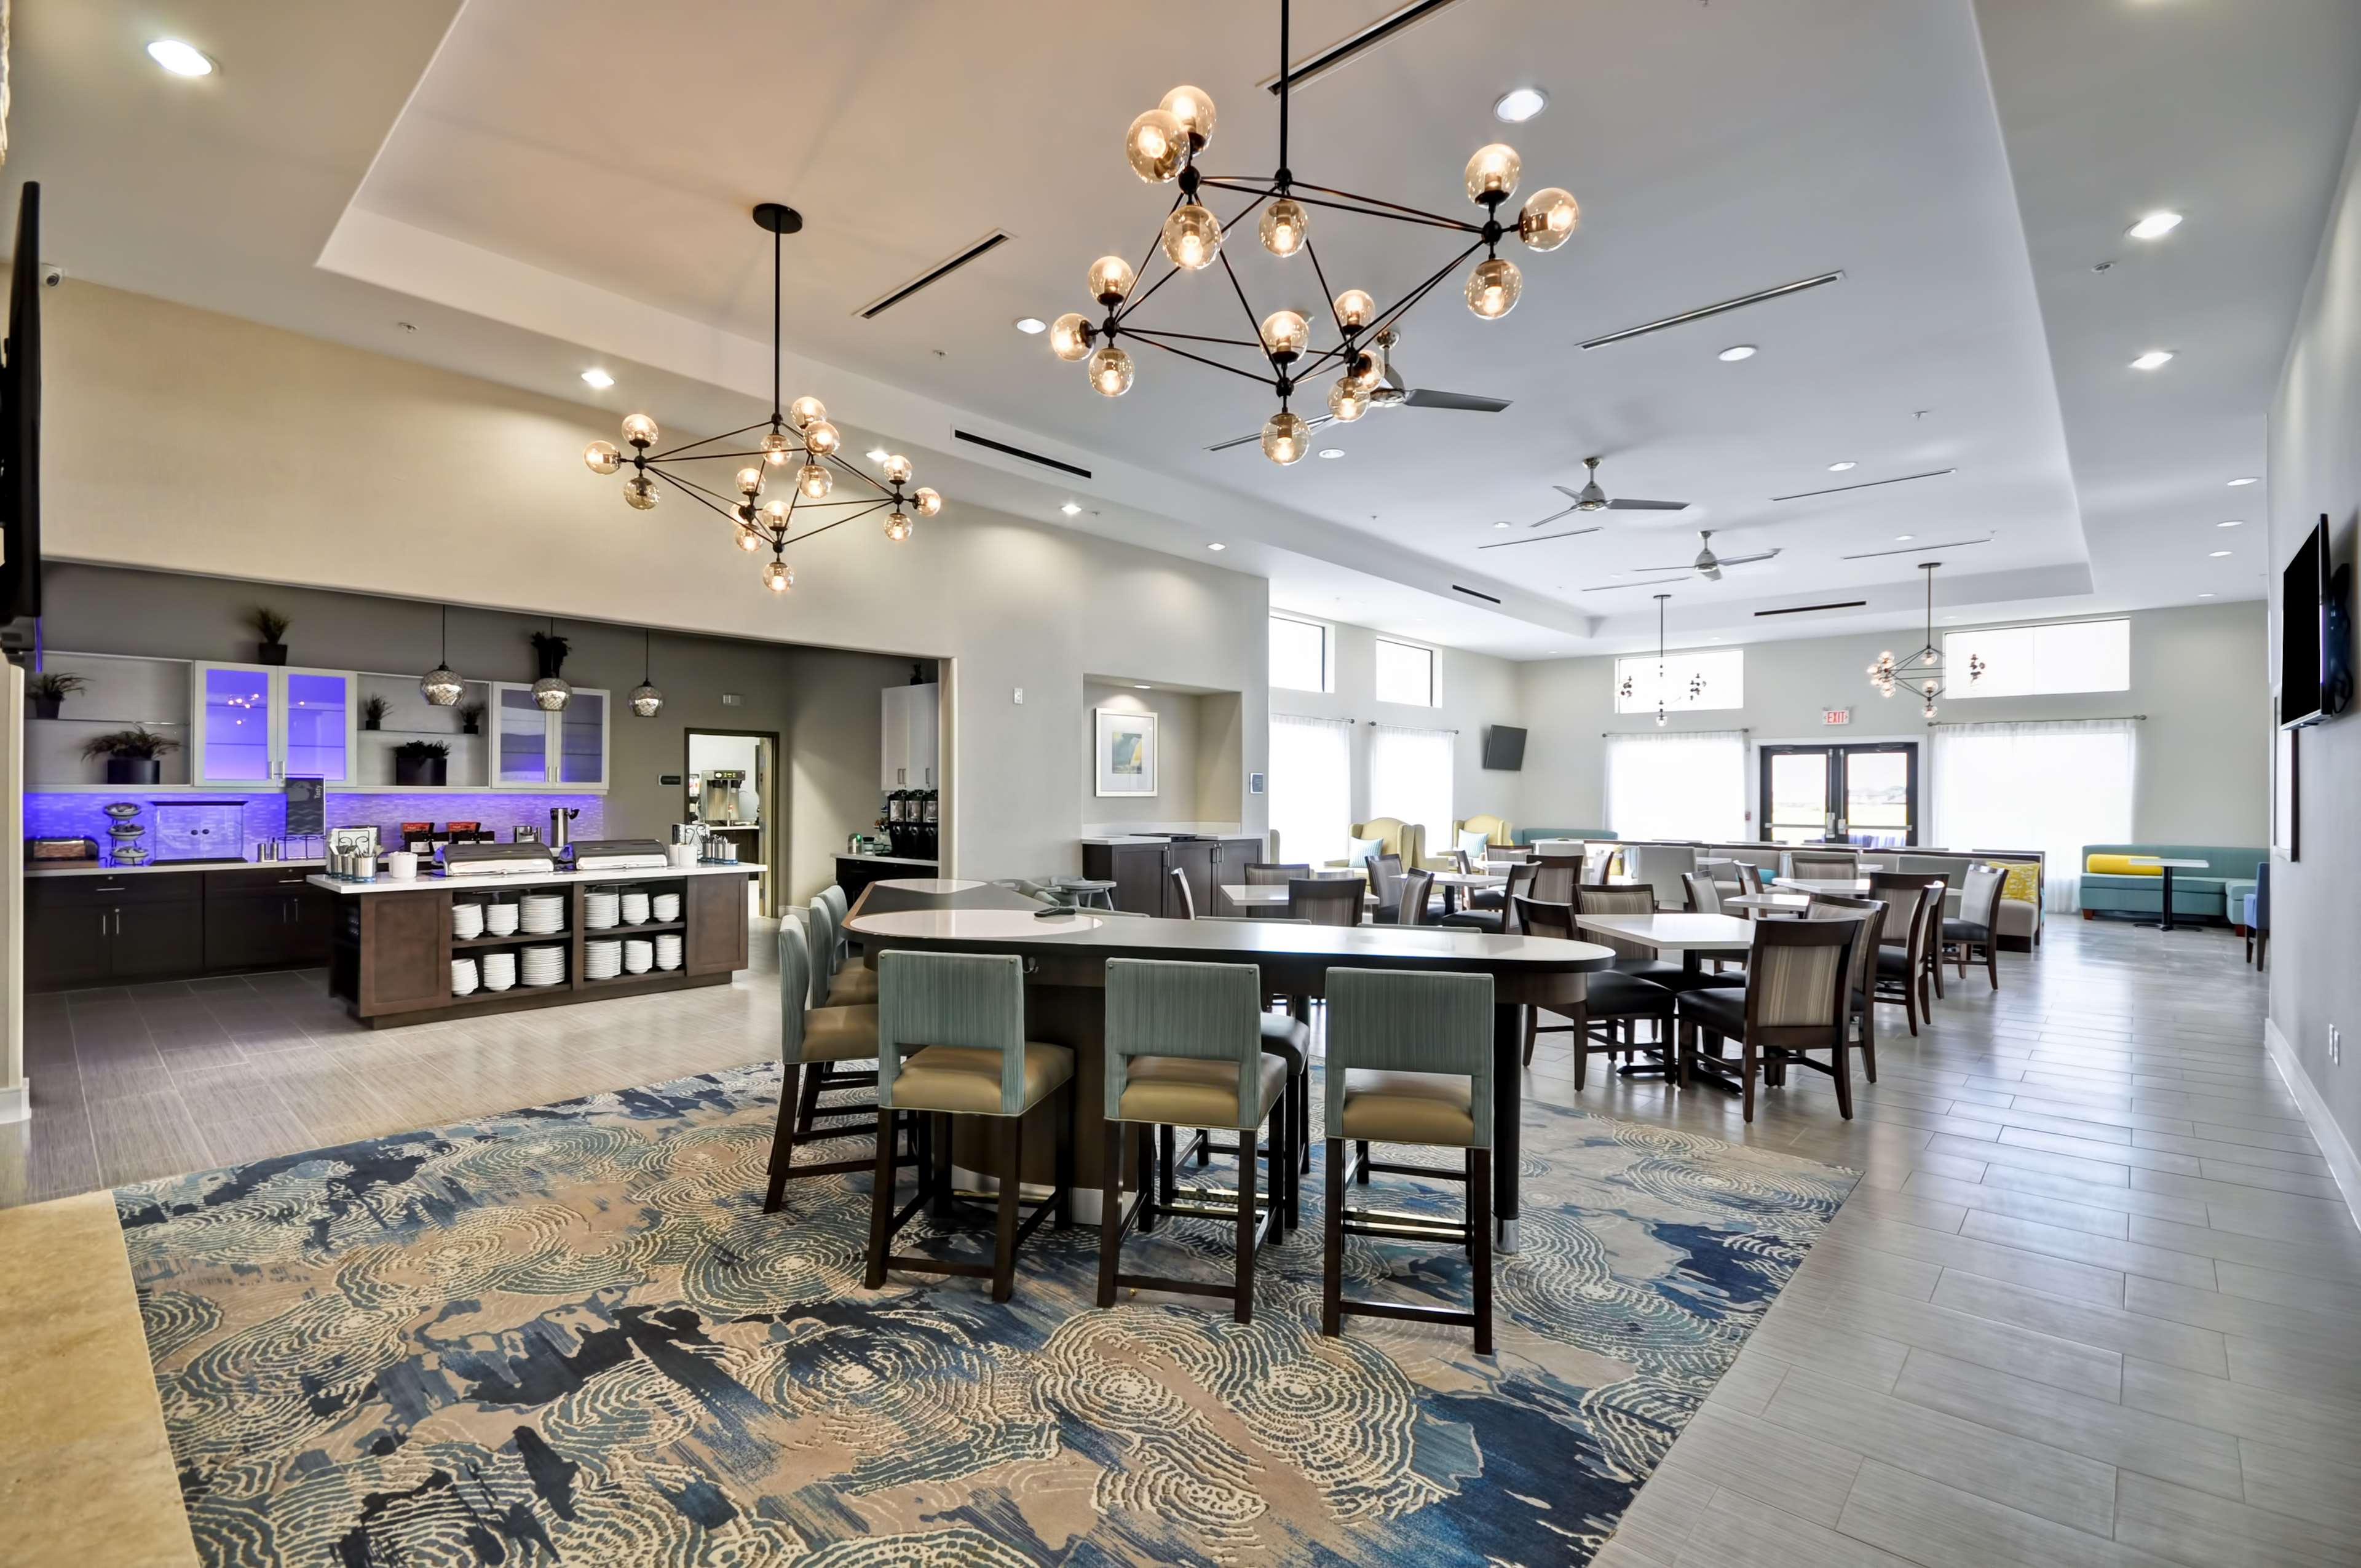 Homewood Suites by Hilton New Braunfels image 14